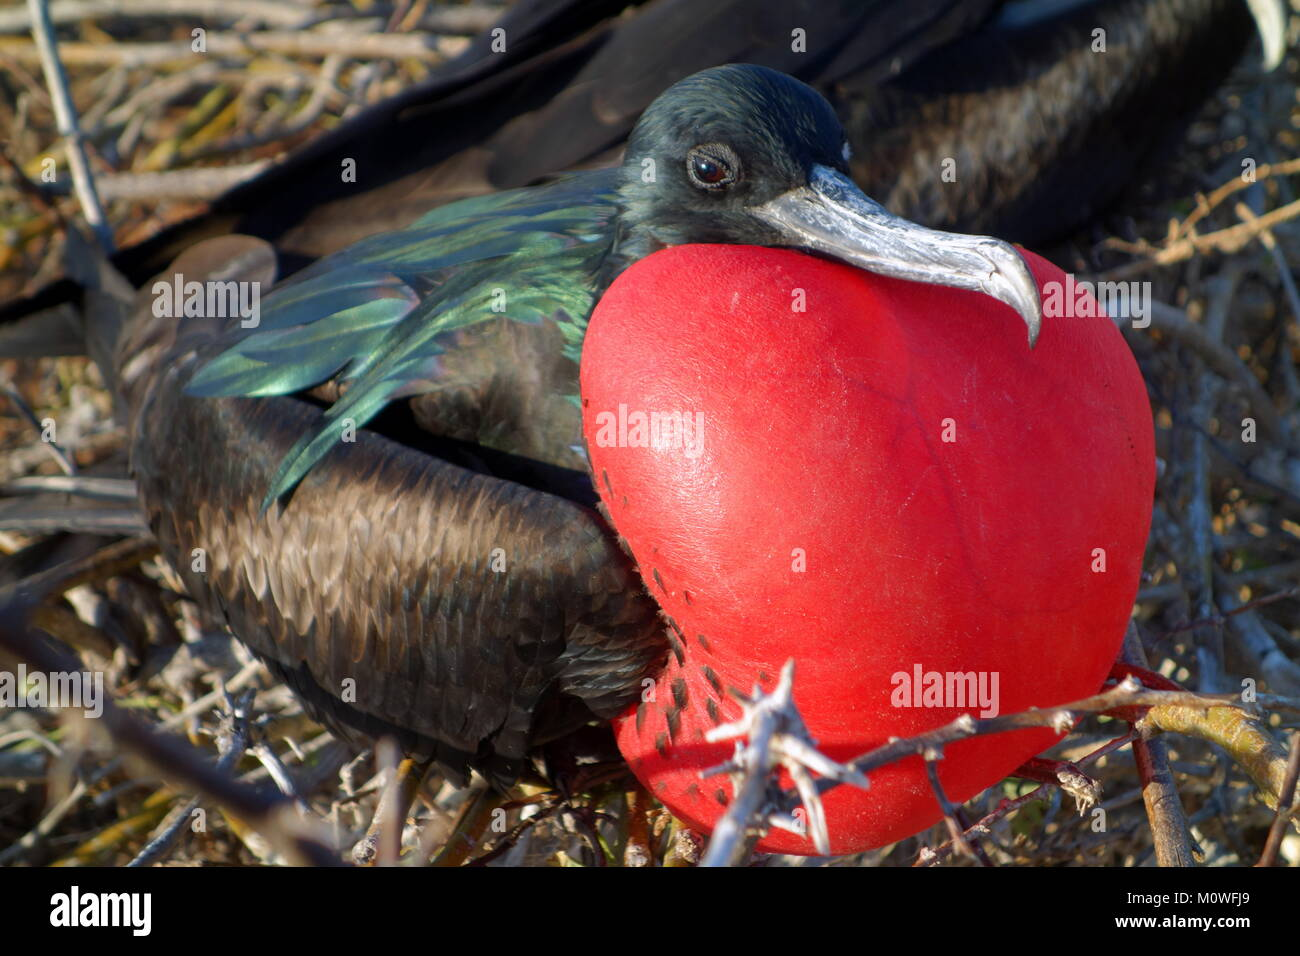 Male Magnificent Frigatebird (Fregata magnificiens) with inflated red chest pouch in the Galapagos - Stock Image